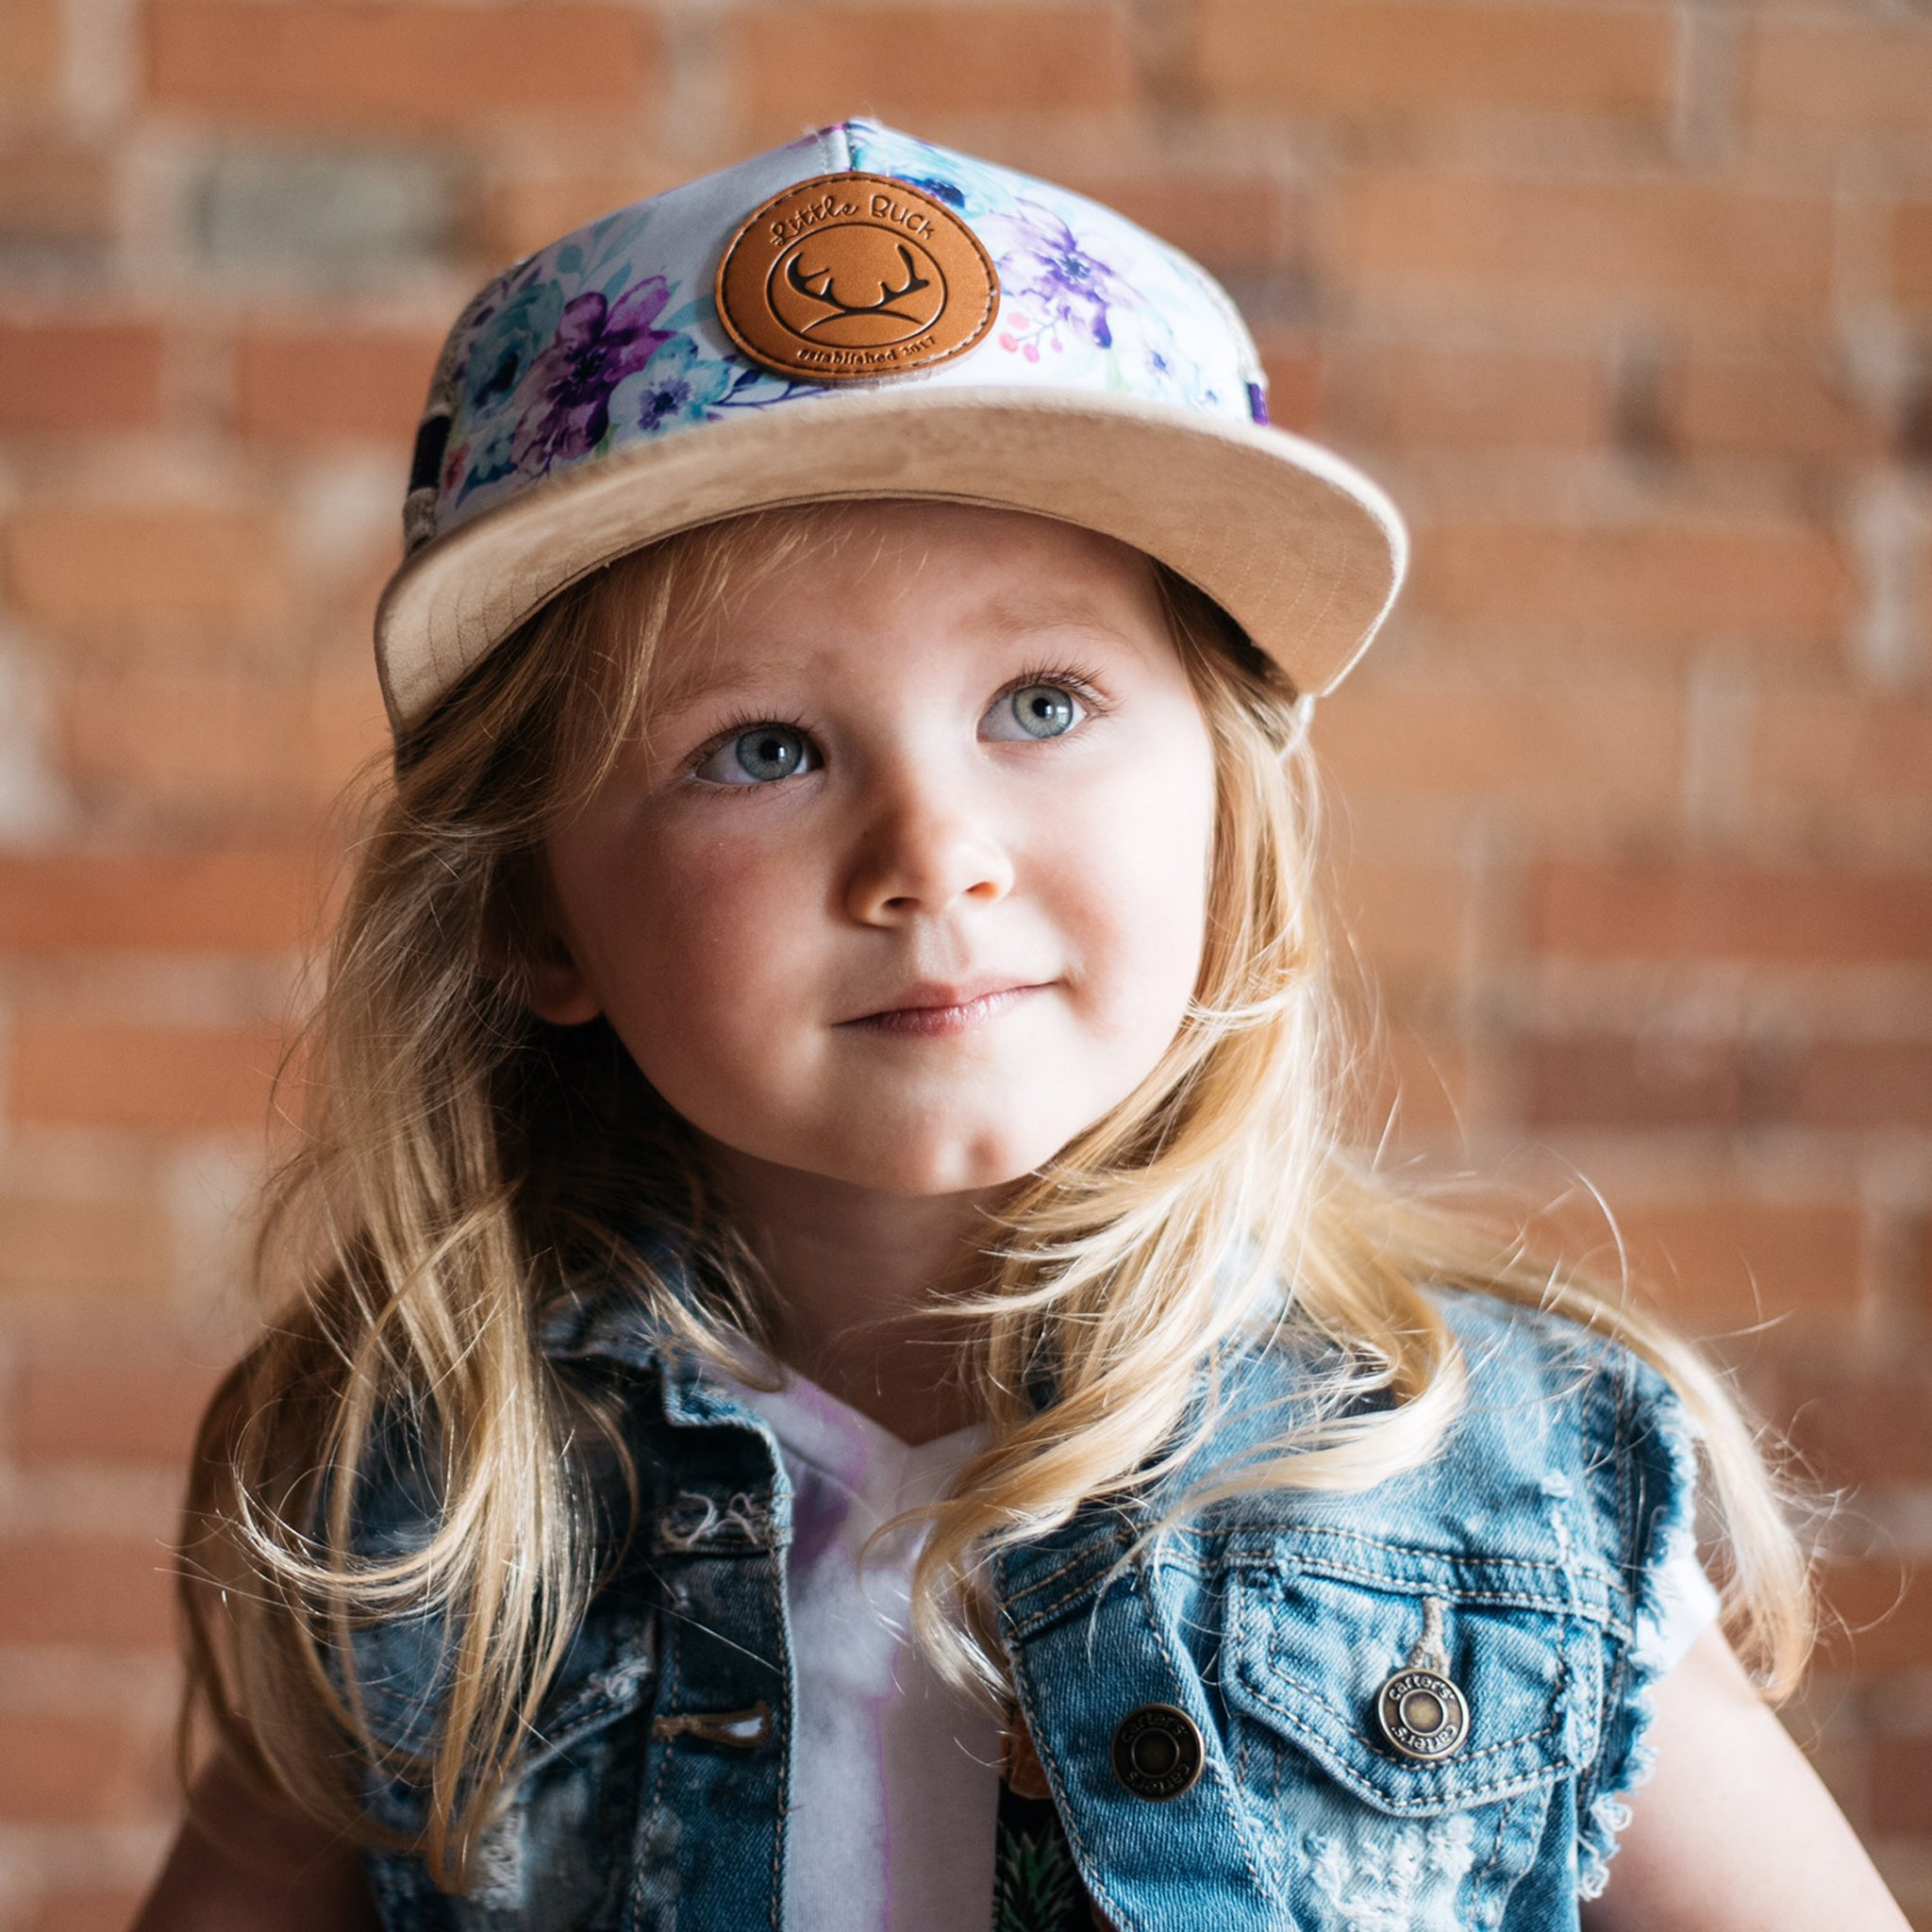 Little girl with blonde hair wearing a jean vest and a floral hat with a leather patch and suede brim